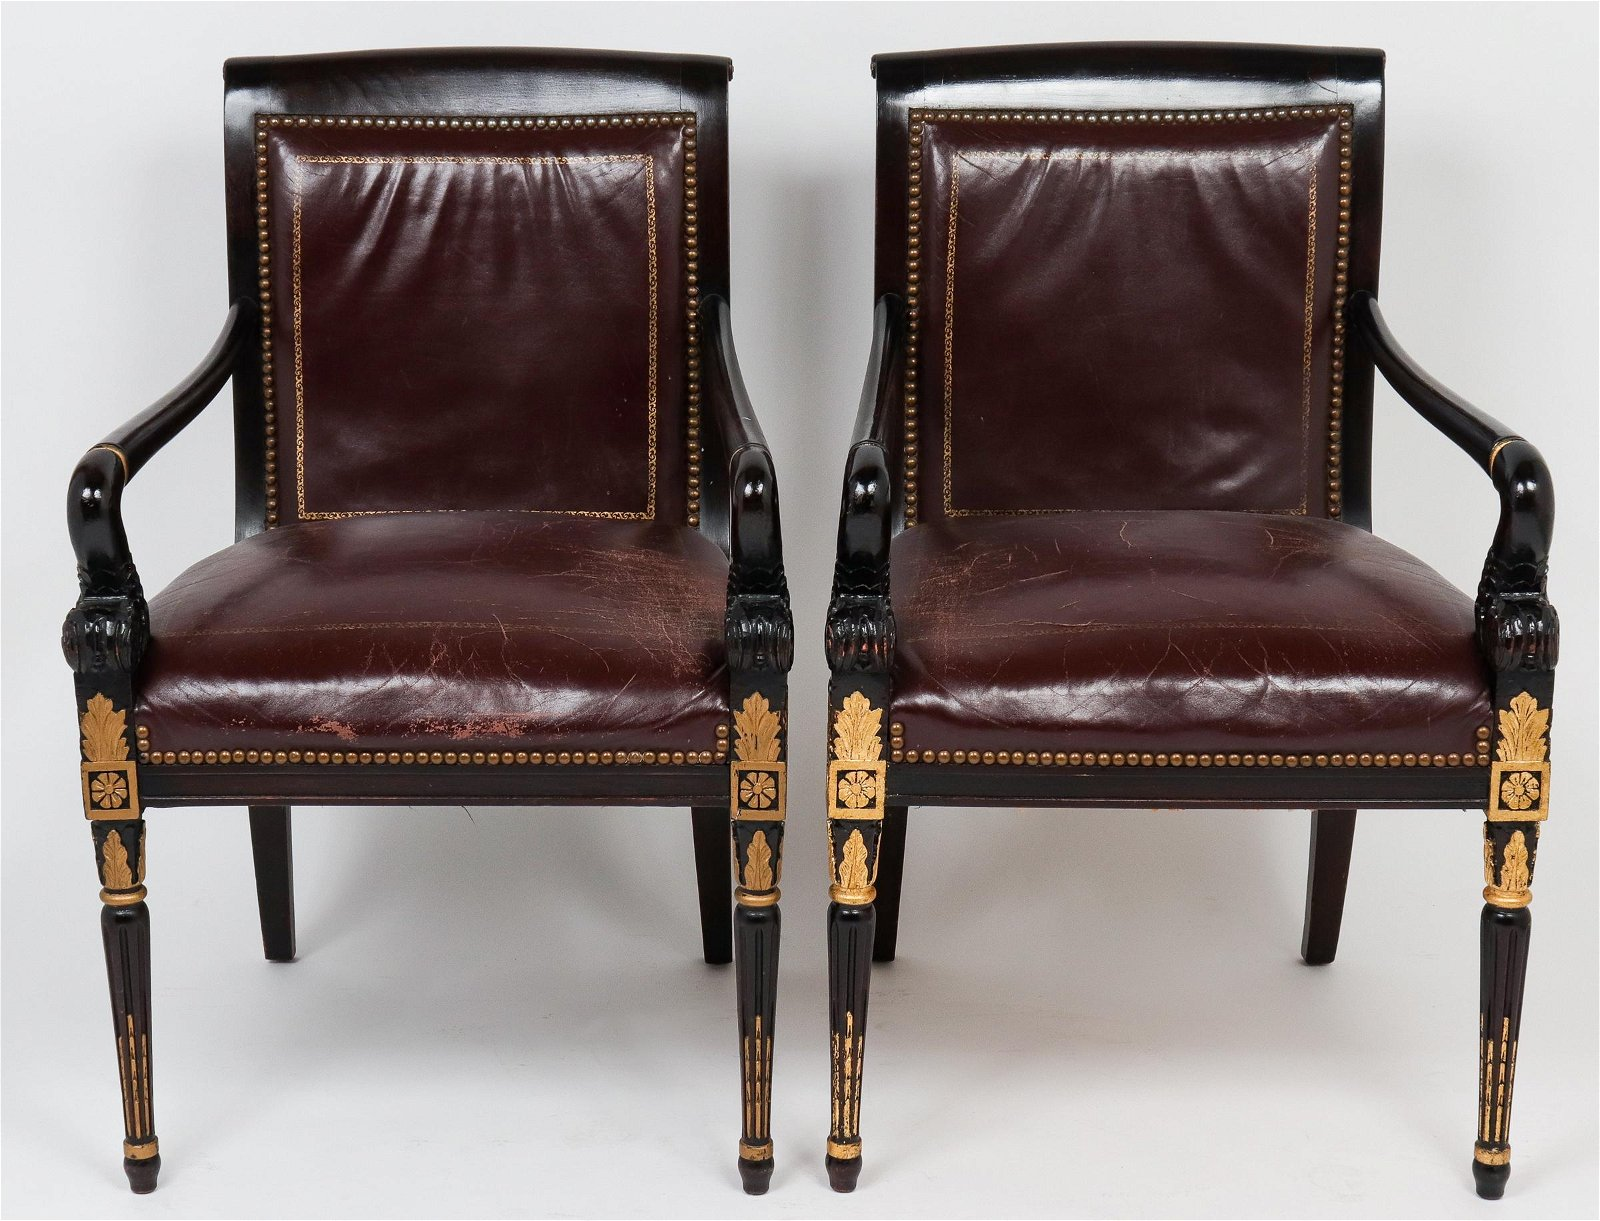 Empire Style Leather and Carved Wood Armchairs, Pr